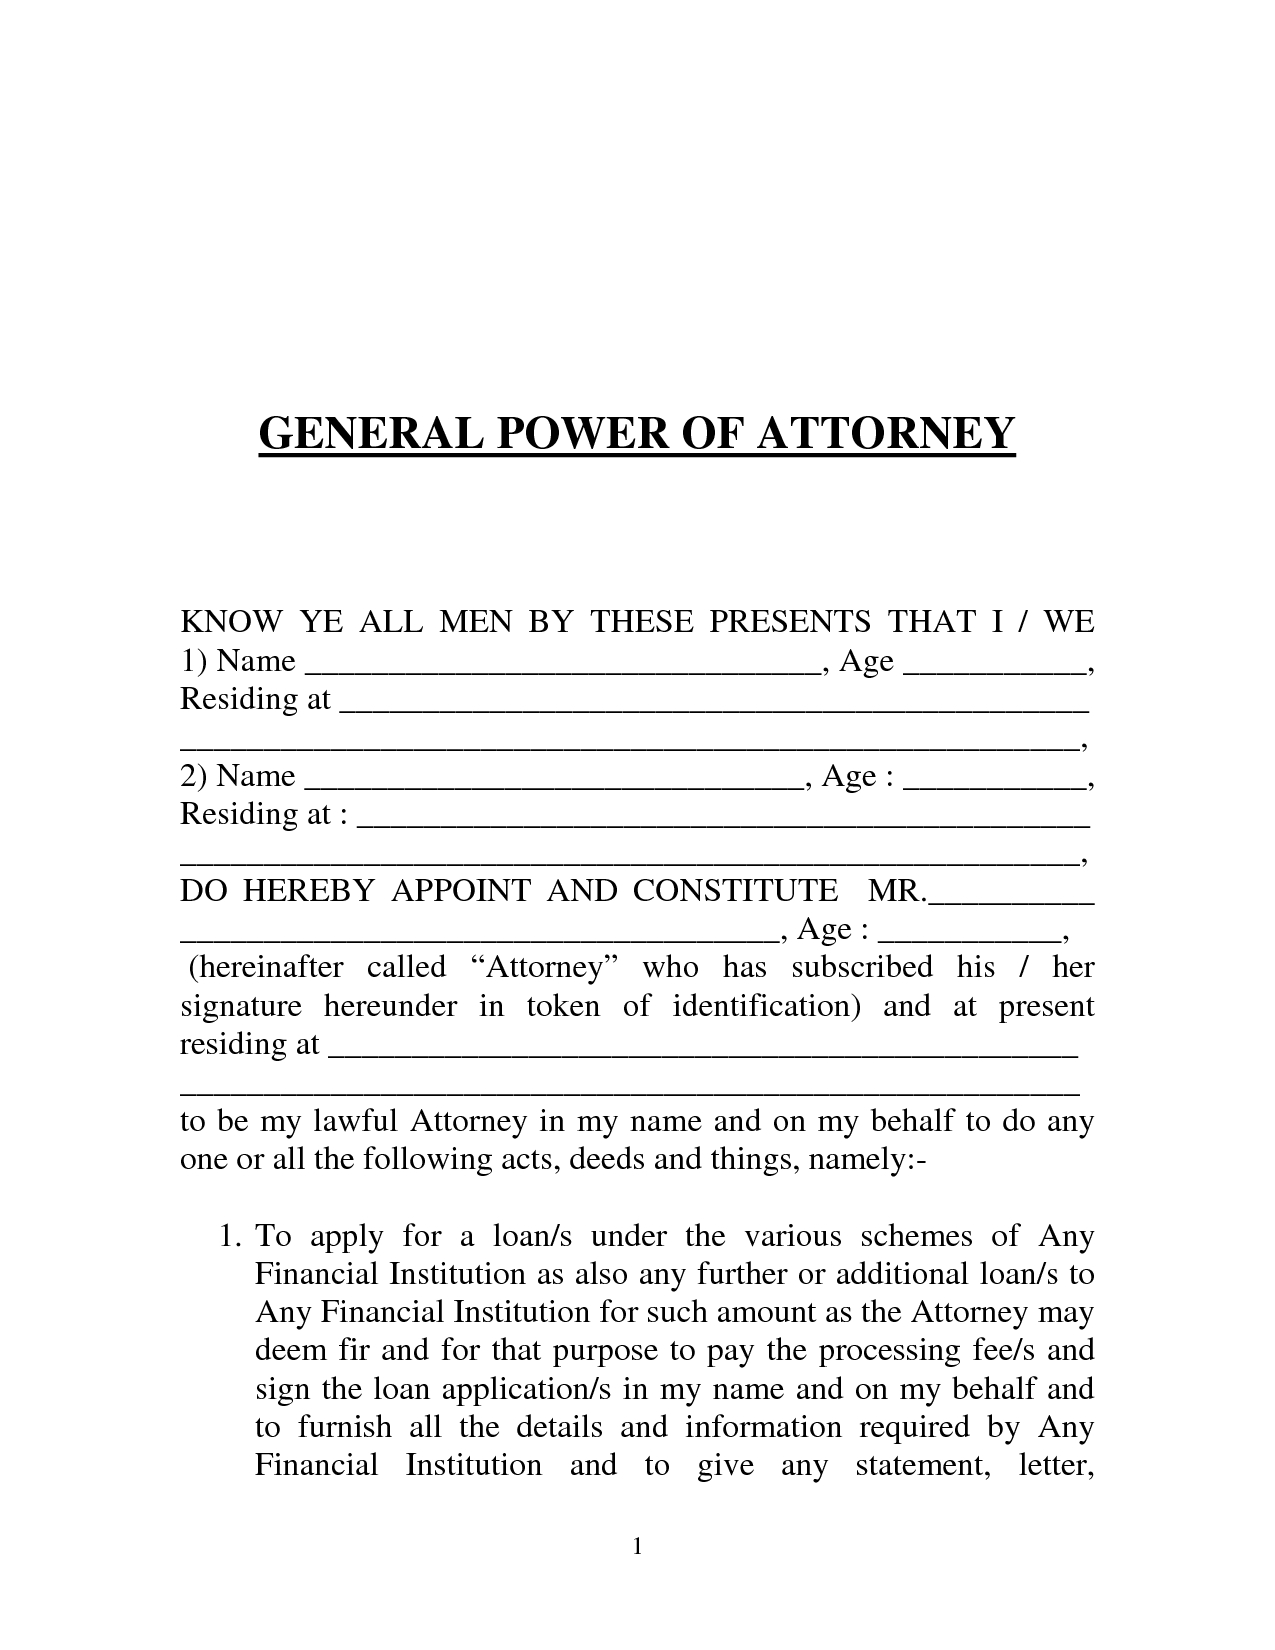 Free Printable Power Of Attorney Form (Generic) - Free Printable Power Of Attorney Forms Online